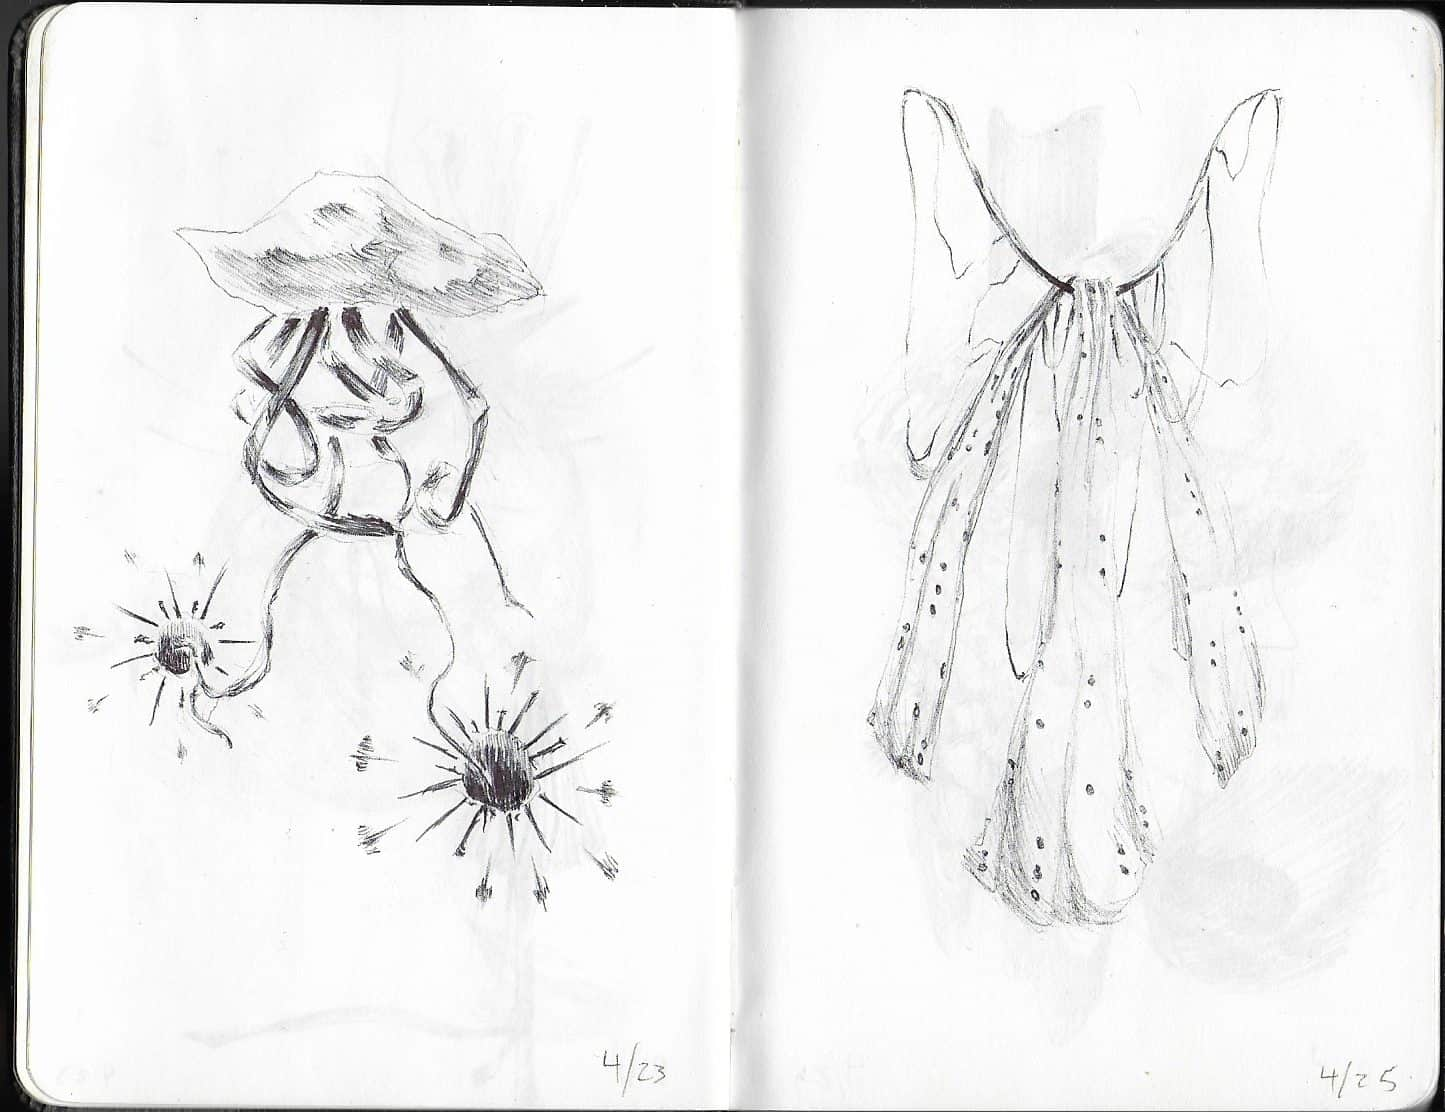 drawing of natural forms, on the left jellyfish-like with two spores undernieth, on the right reminiscent of fairy wings